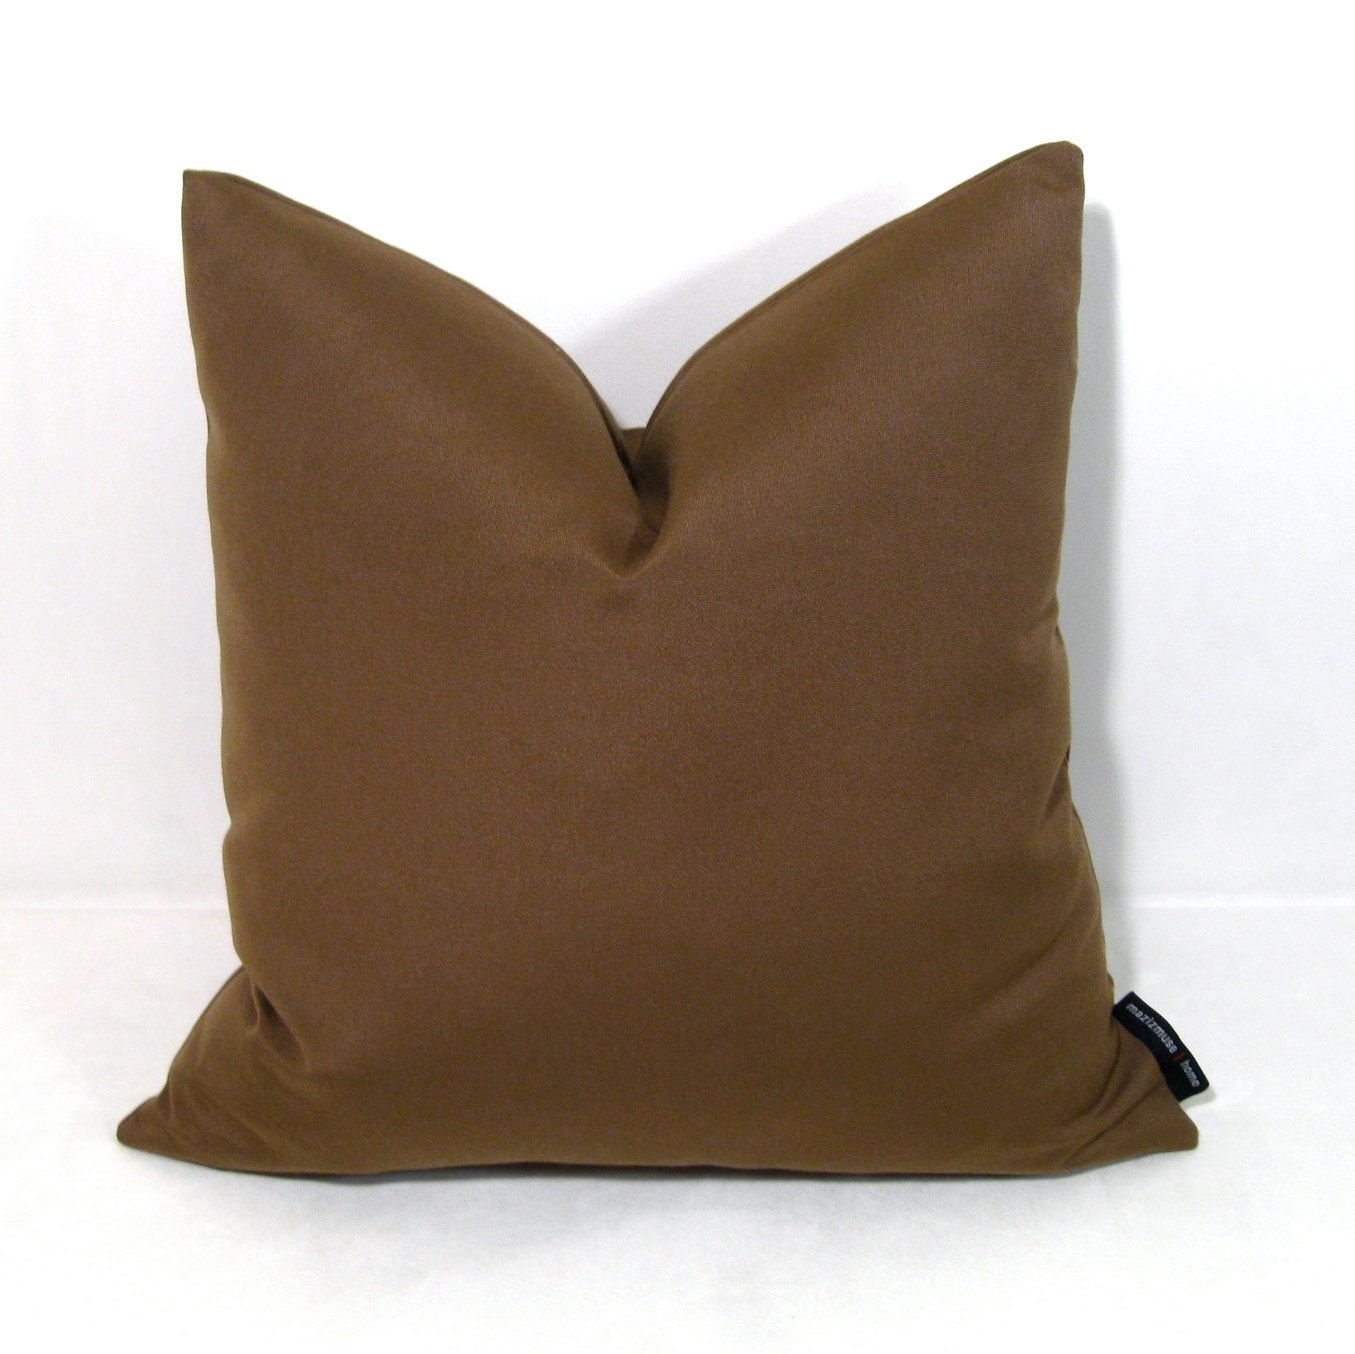 Cocoa Brown Outdoor Pillow Cover, Modern Chocolate Brown Throw Pillow,  Masculine Pillow Case, Decorative Sunbrella Cushion Cover, Mazizmuse